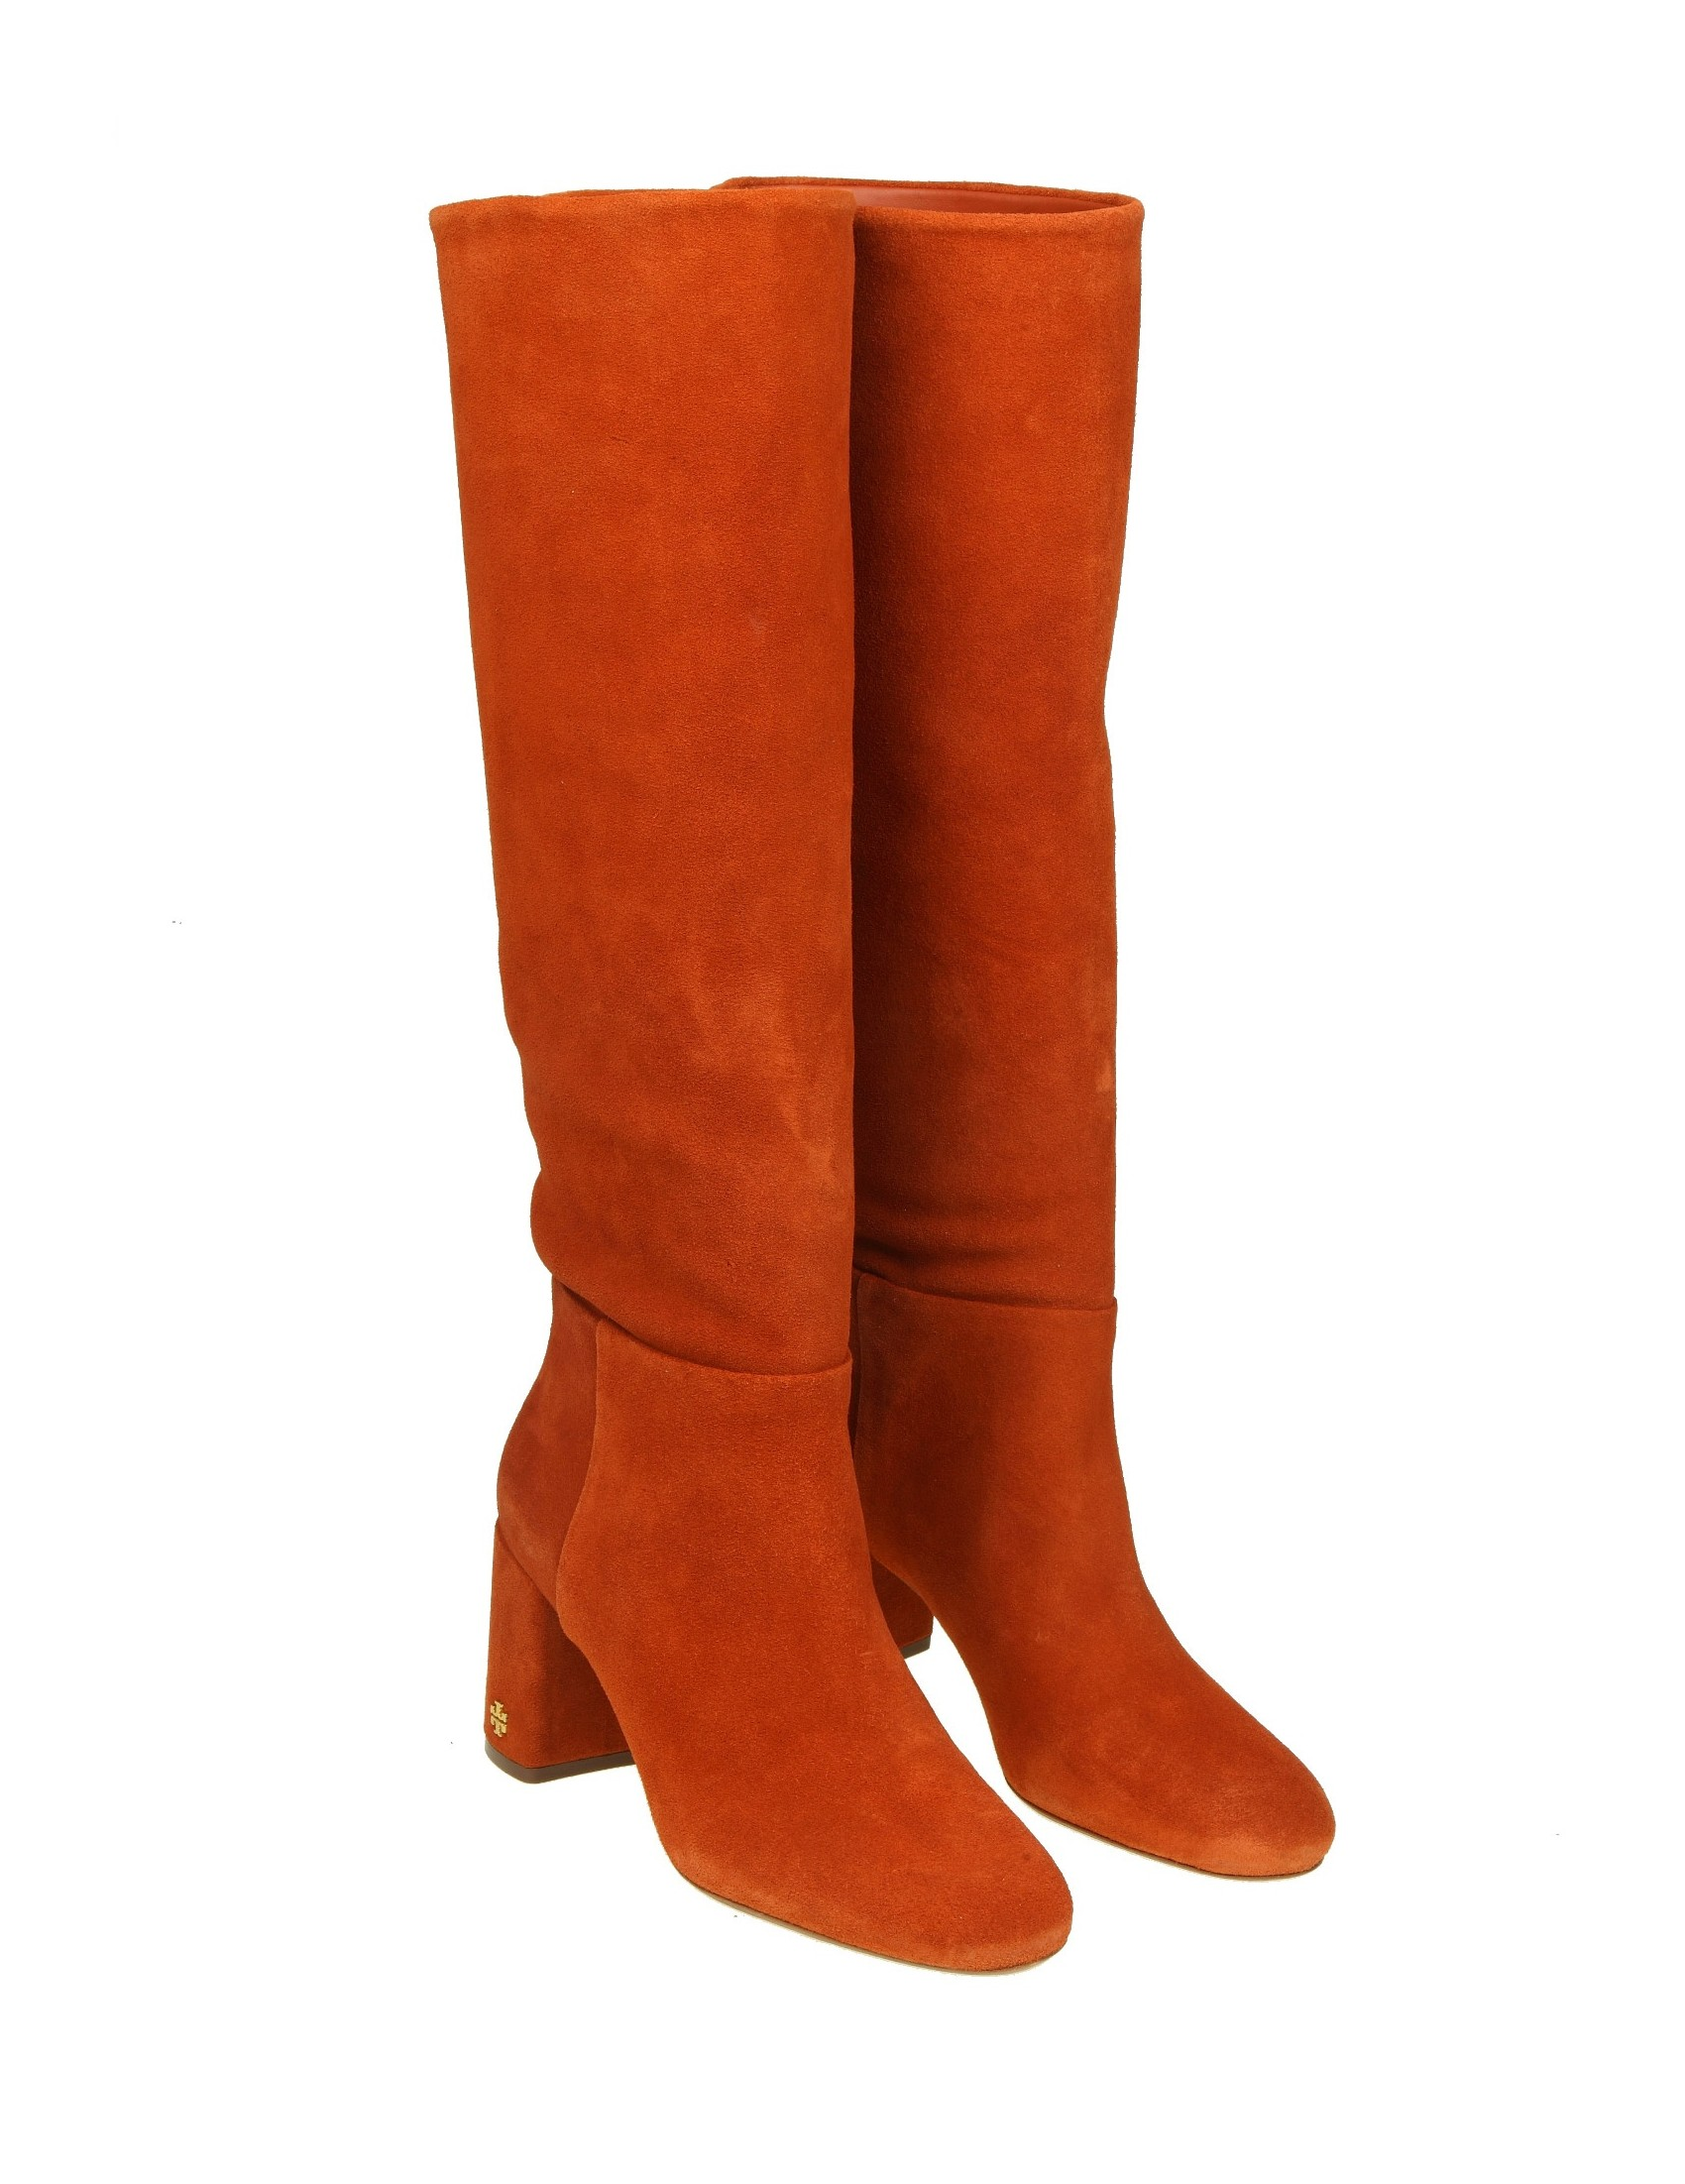 0d022a7a4d0 Tory Burch Red Boots - Best Picture Of Boot Imageco.Org